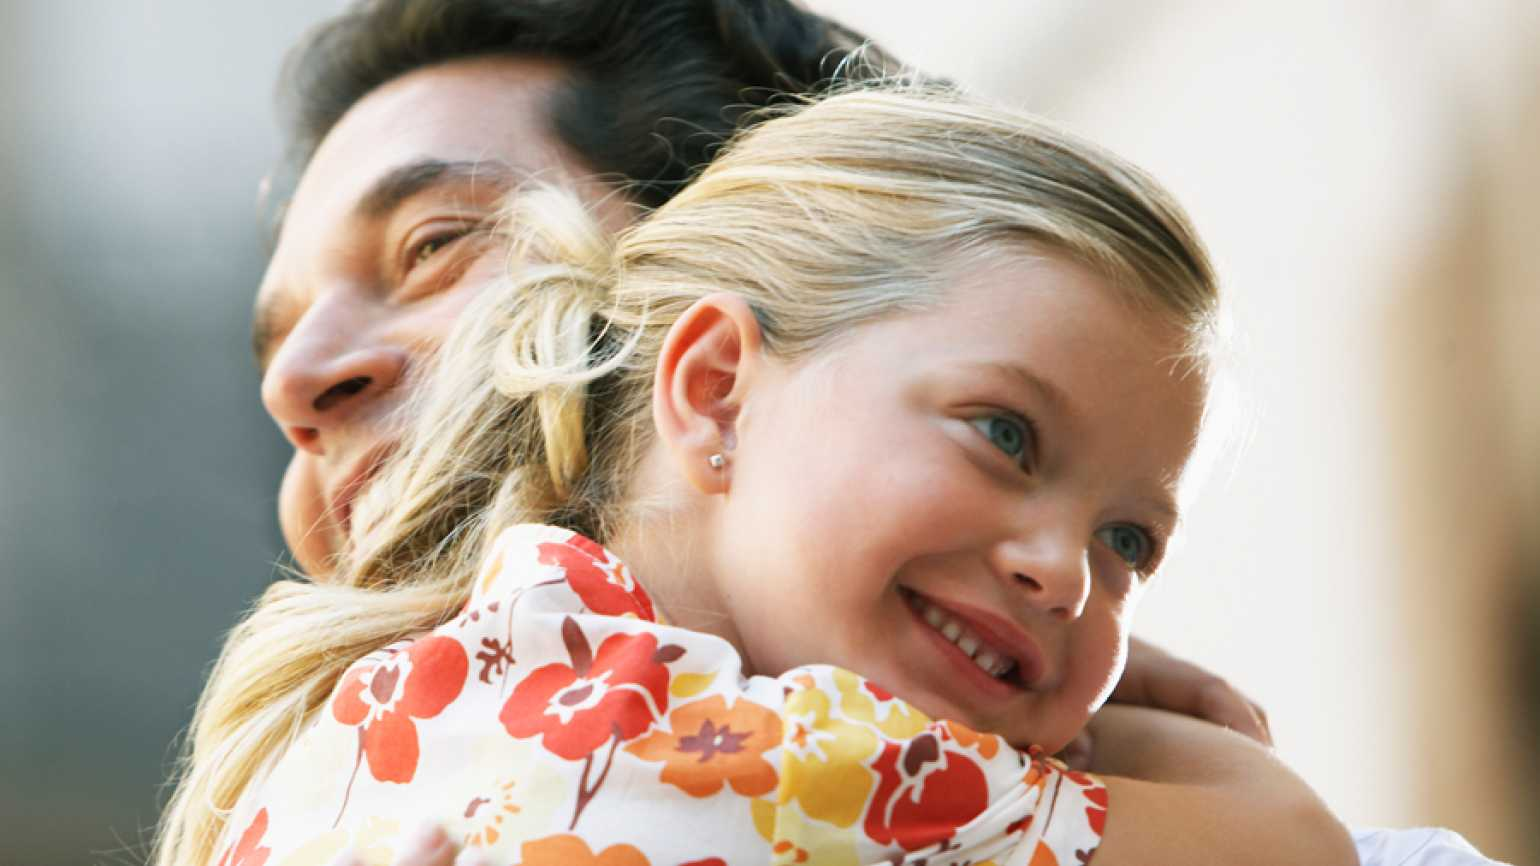 A young girl lovingly embraces her father, her face beaming.